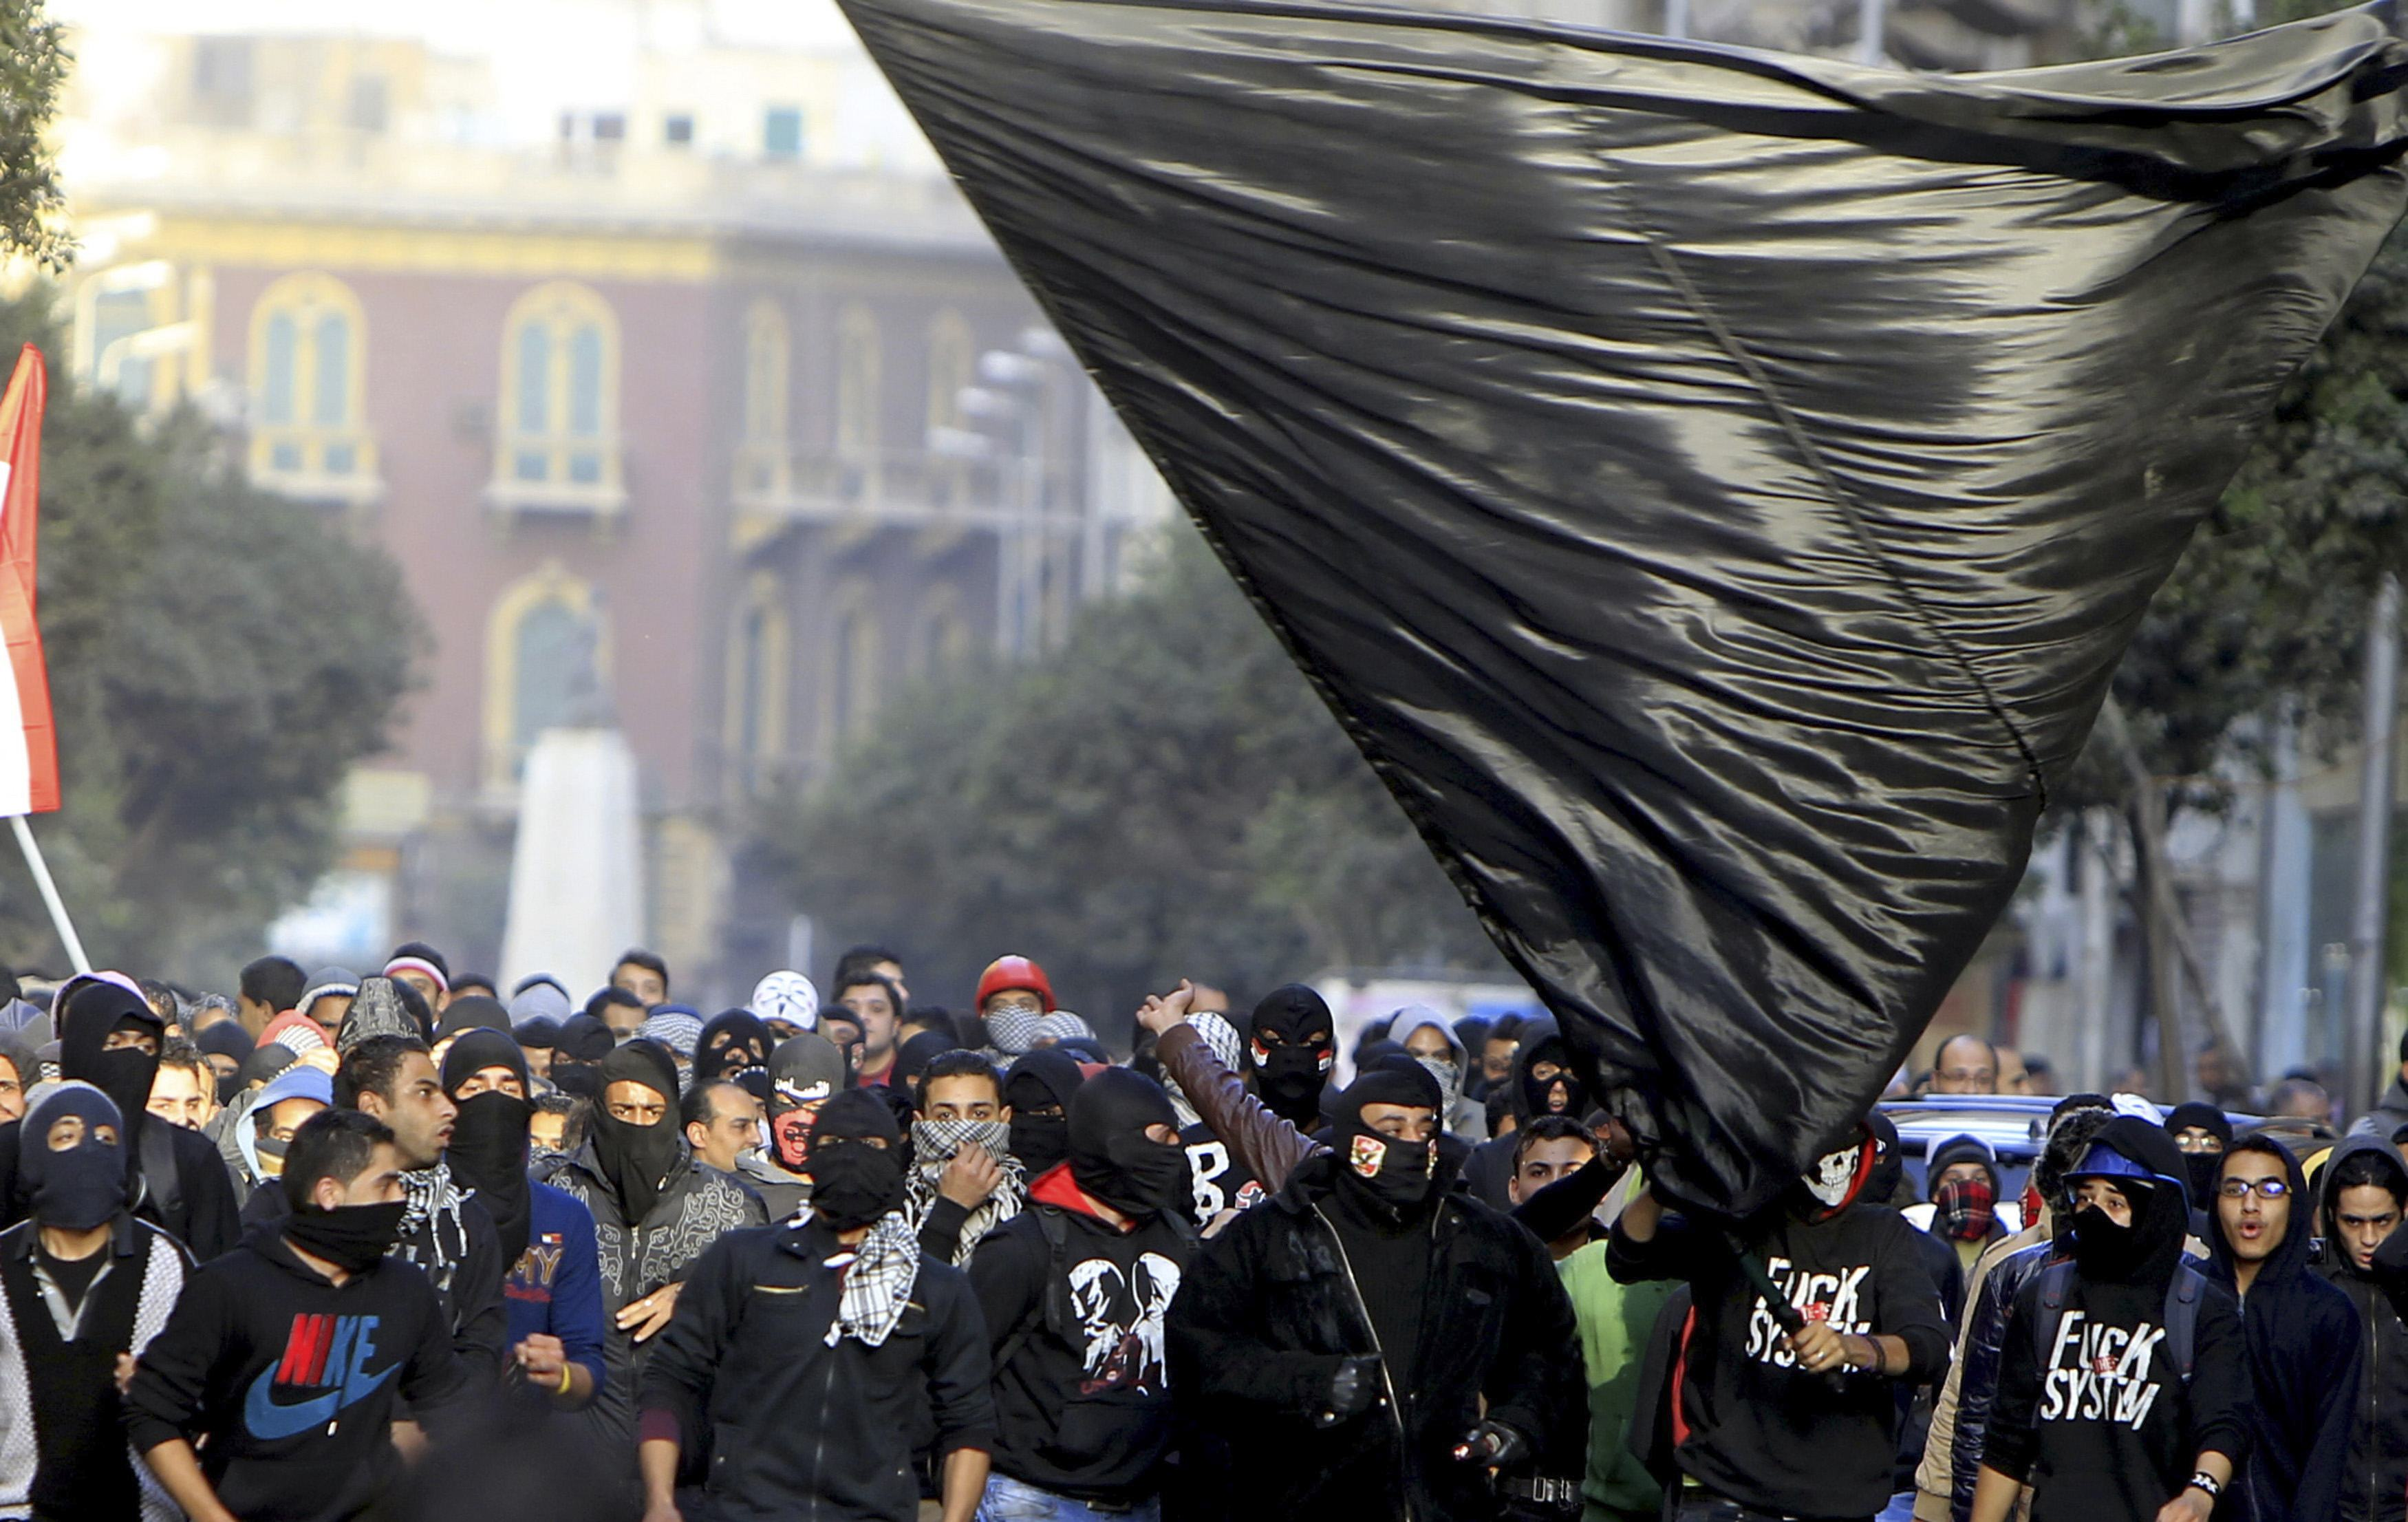 Black Bloc attempt to storm Mansoura government building